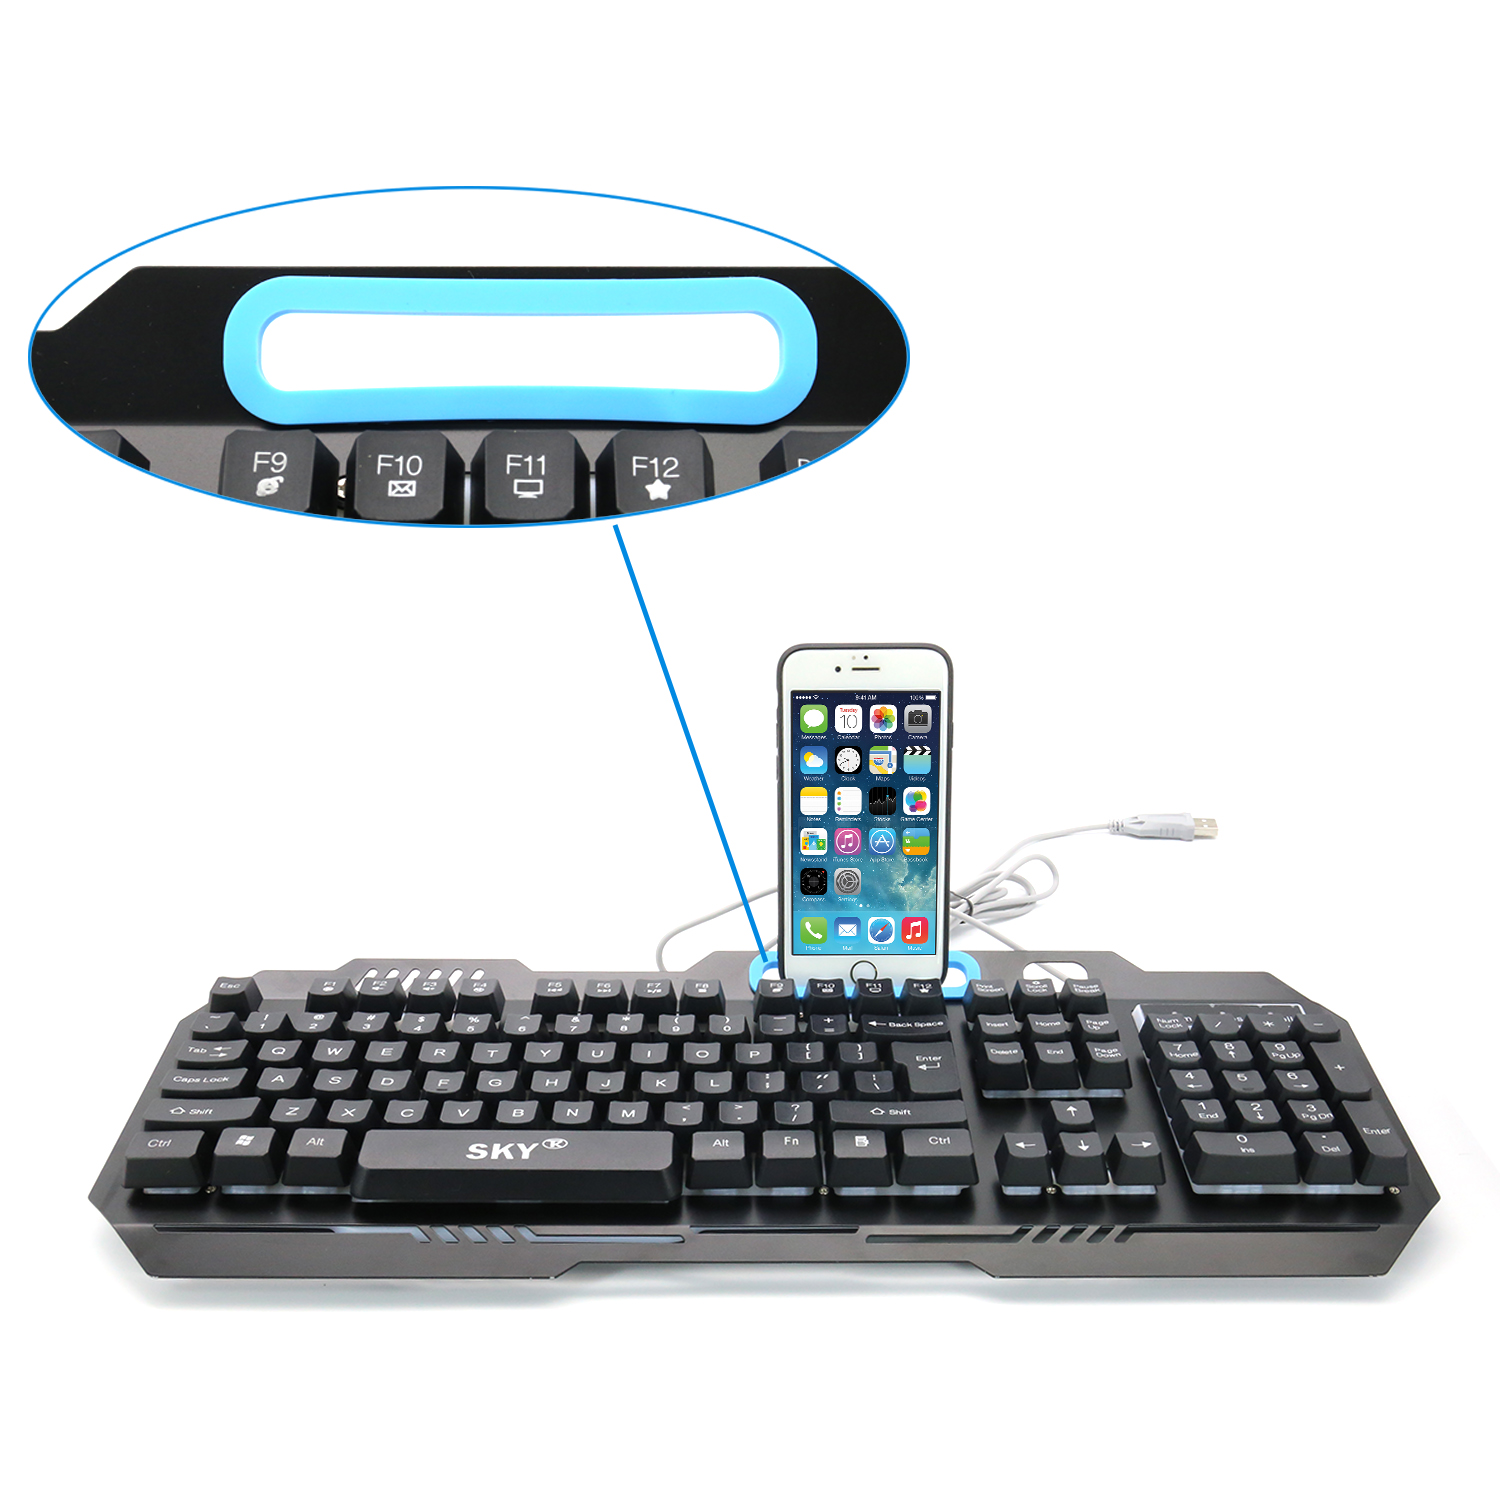 New entry level LED backlight Ergonomic multimedia membrane keyboard for gaming